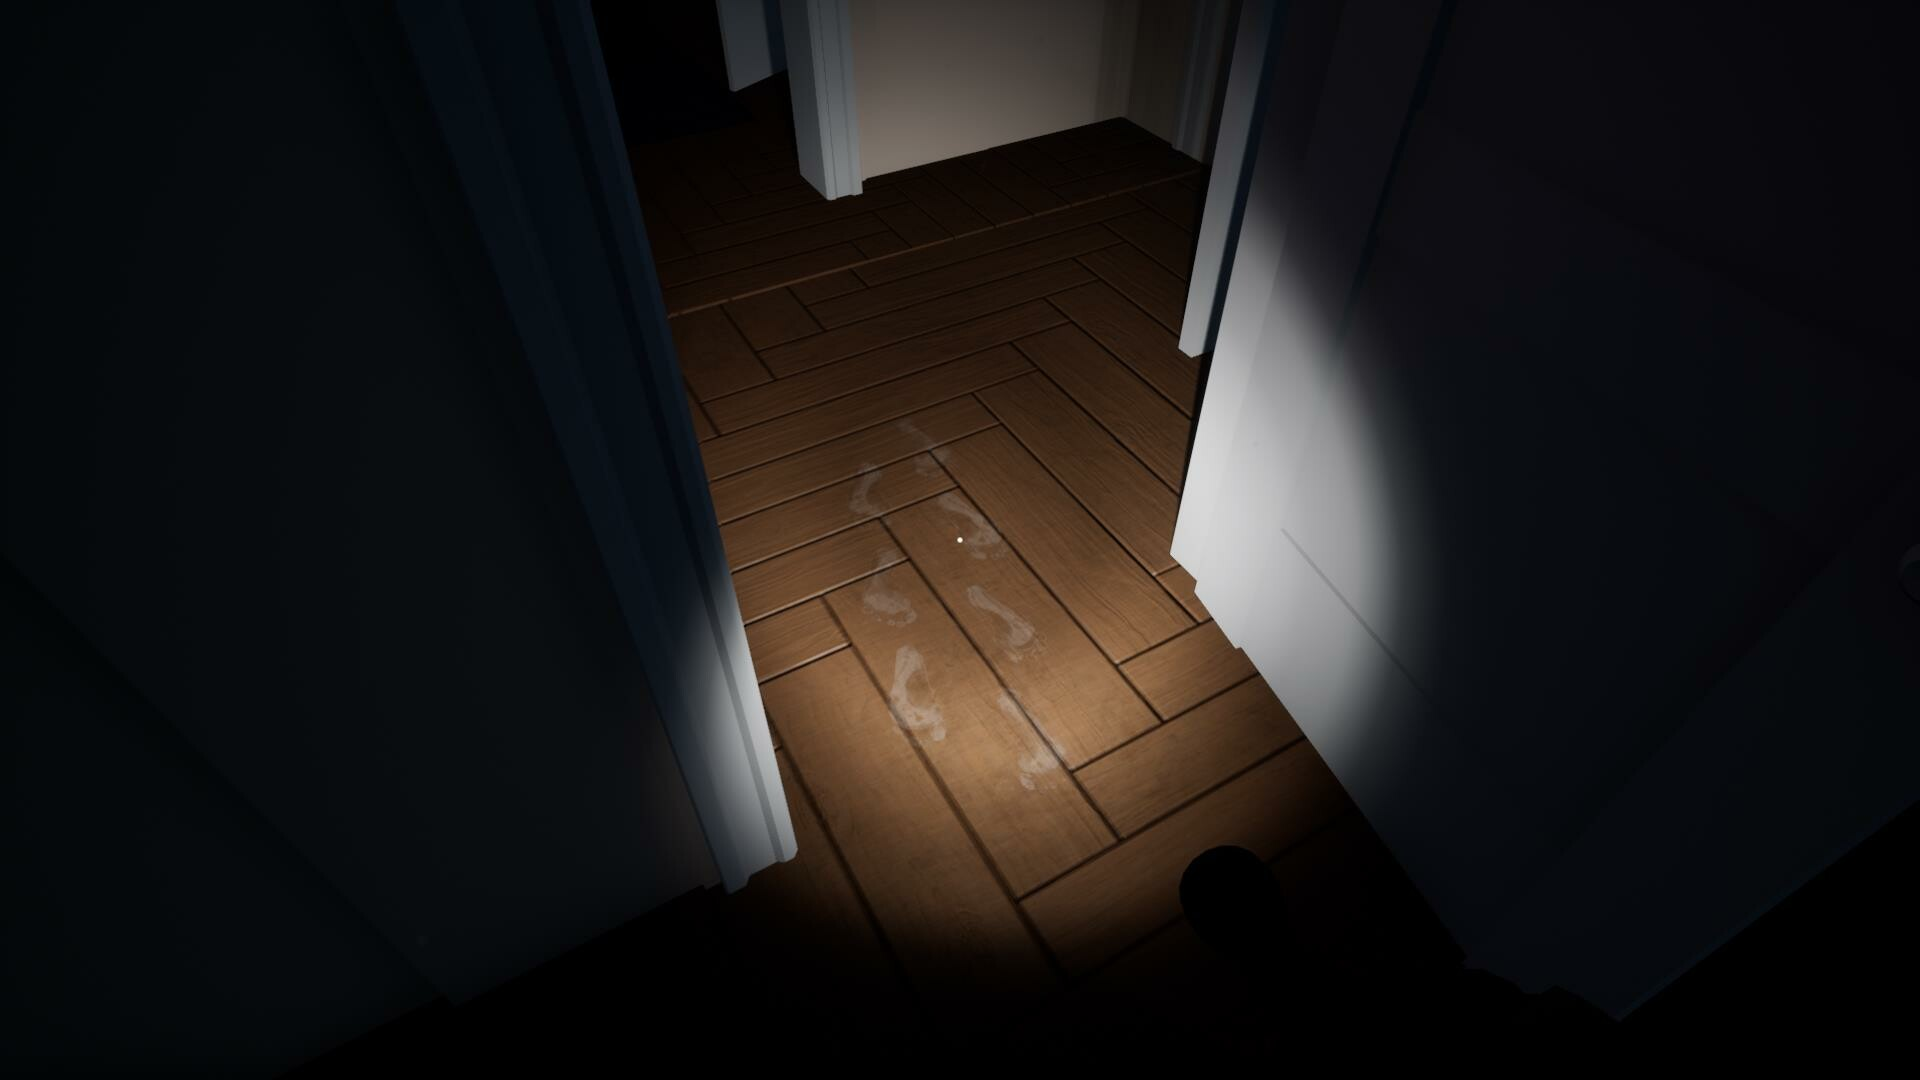 The entrance to the Child's bedroom marked by footprints